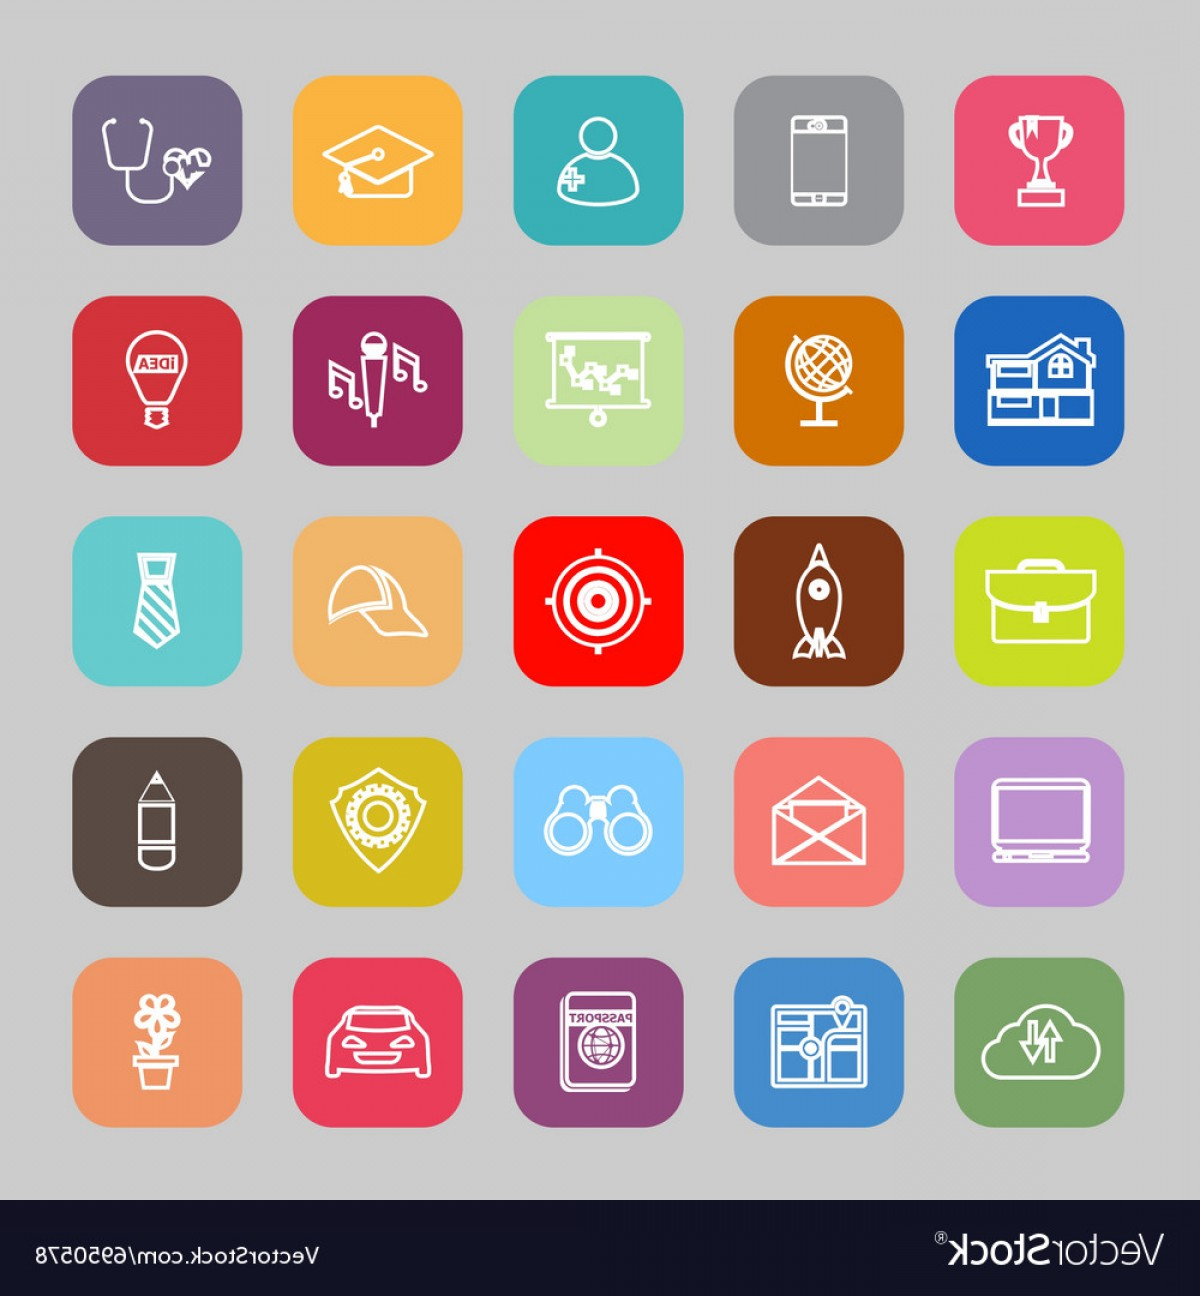 Vectors Job Description: Job Description Line Flat Icons Vector